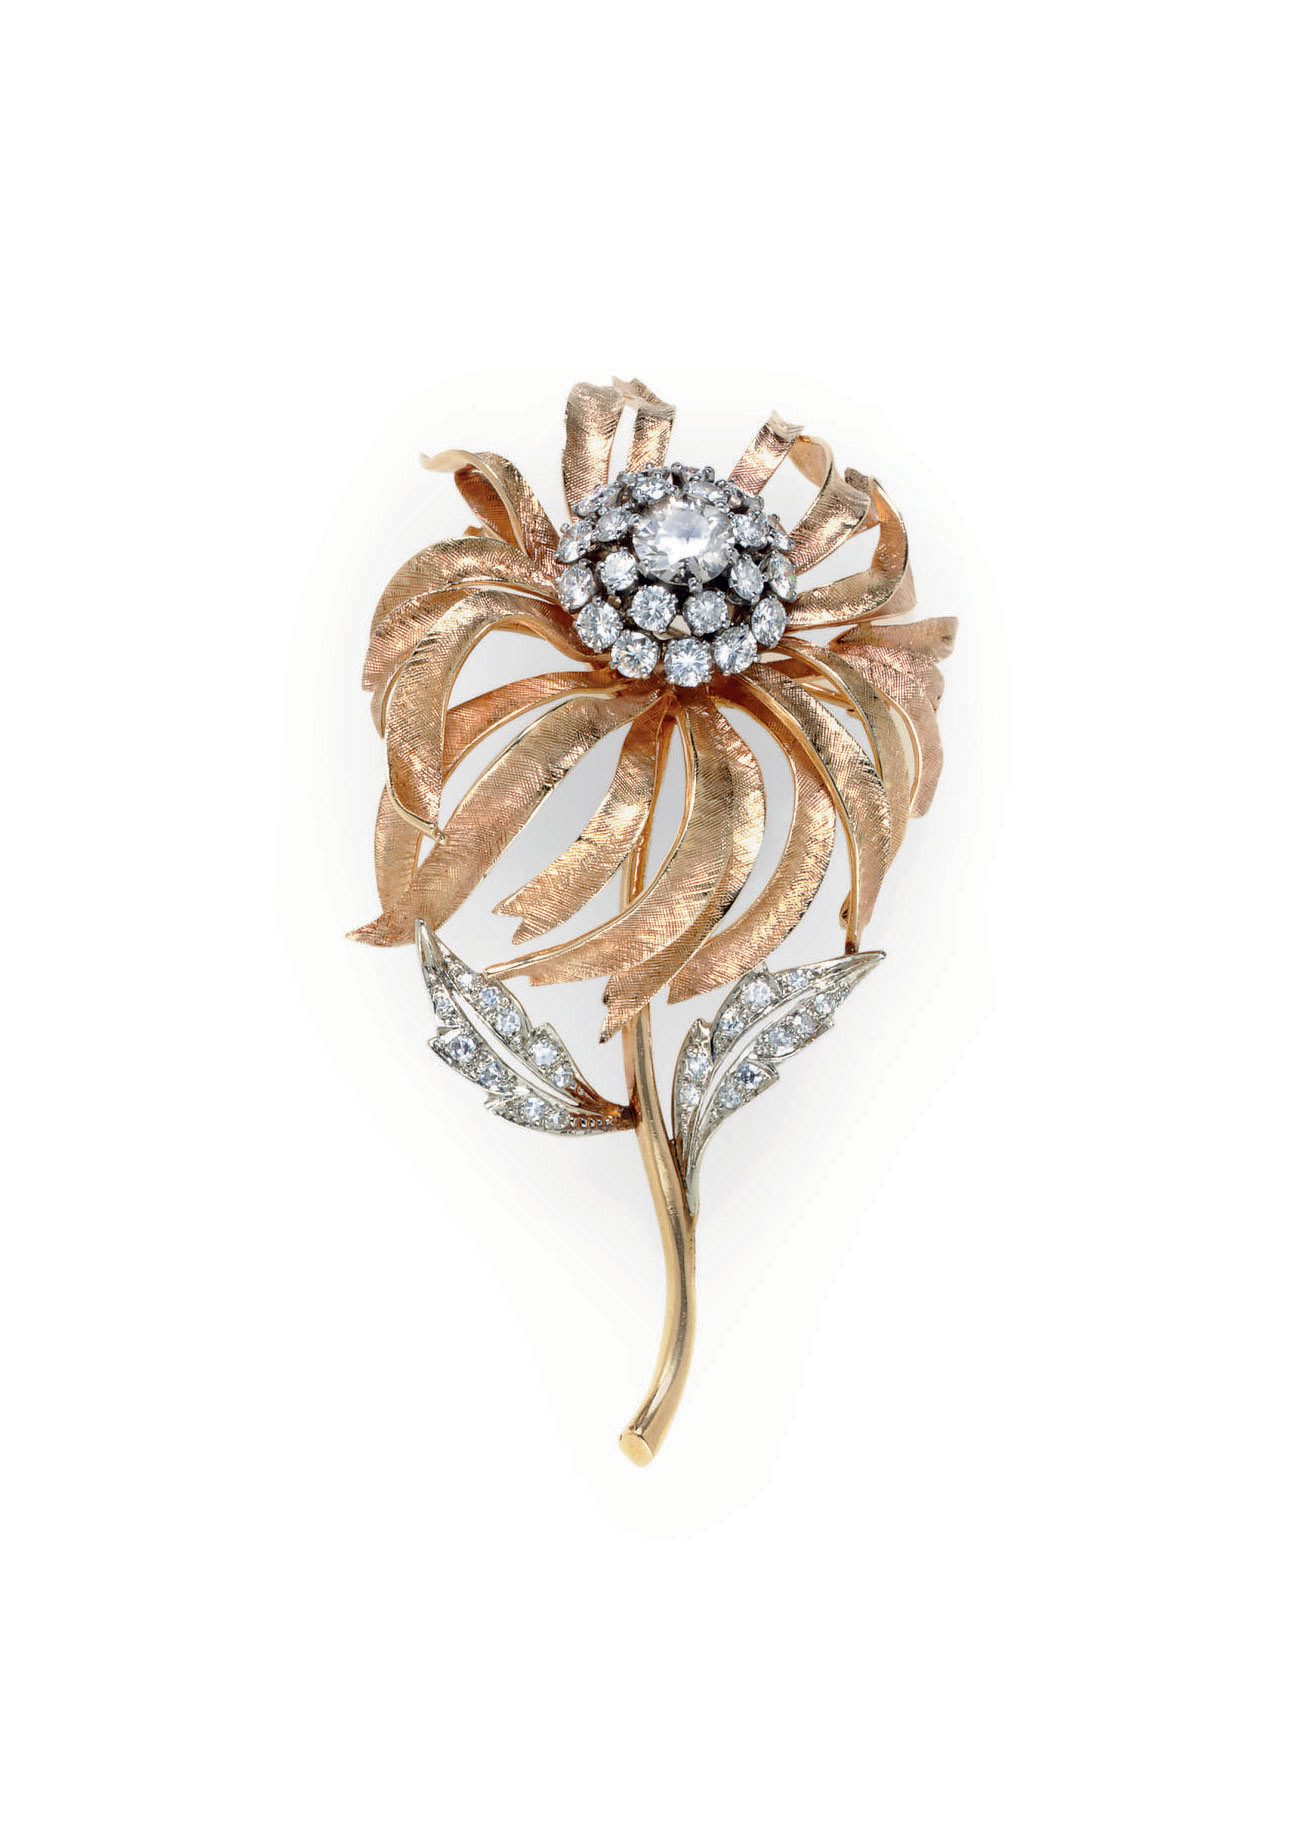 A DIAMOND AND 14K GOLD FLOWER